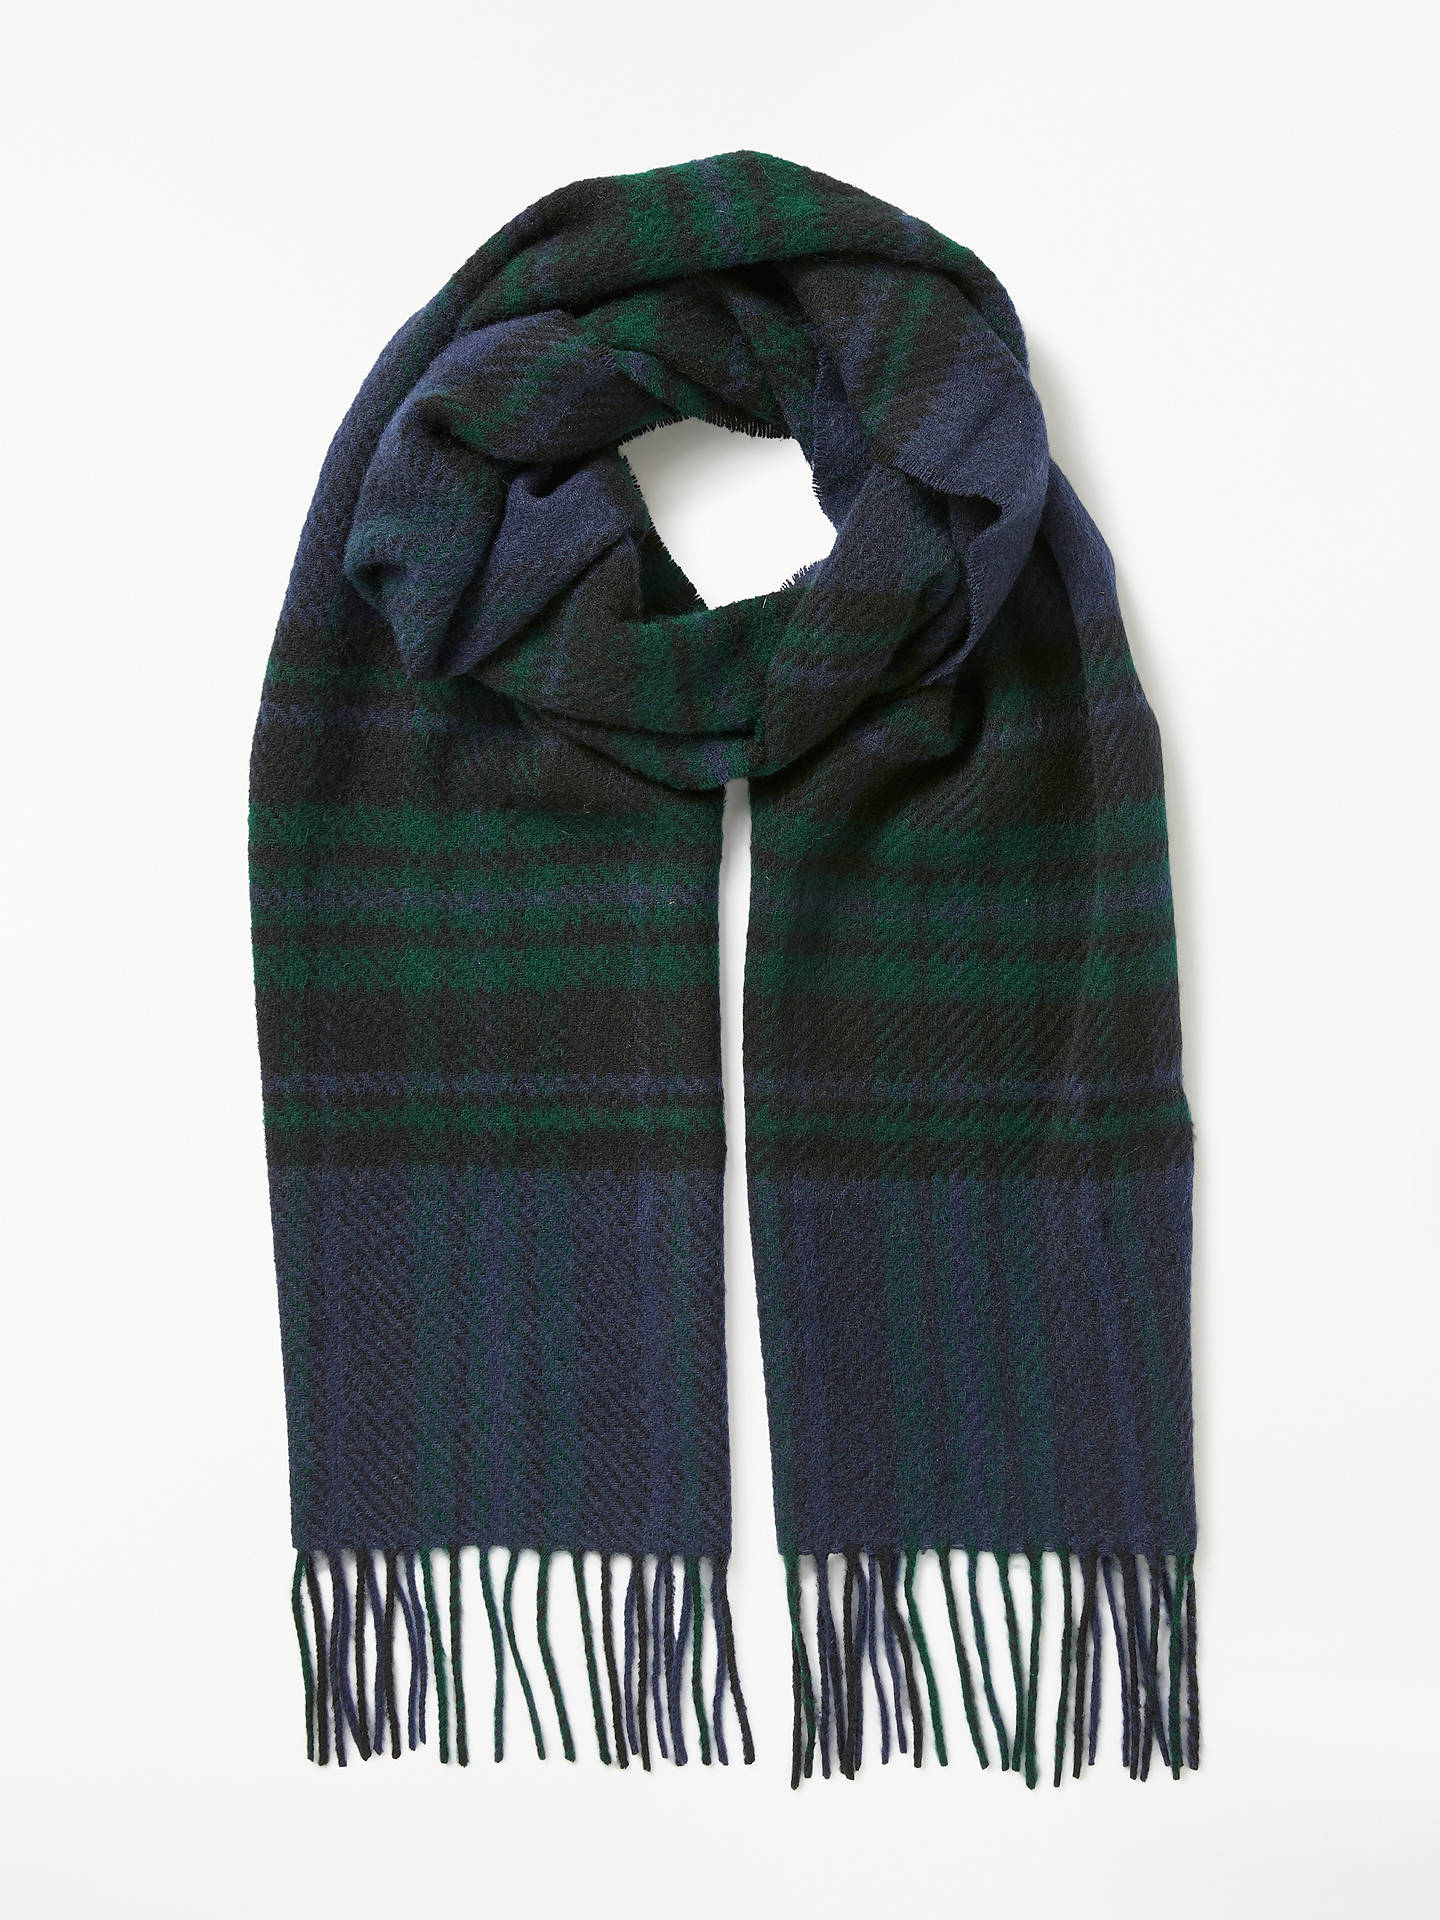 BuyBarbour Moons Lowerfell Lambswool Check Scarf, Navy/Green Online at johnlewis.com